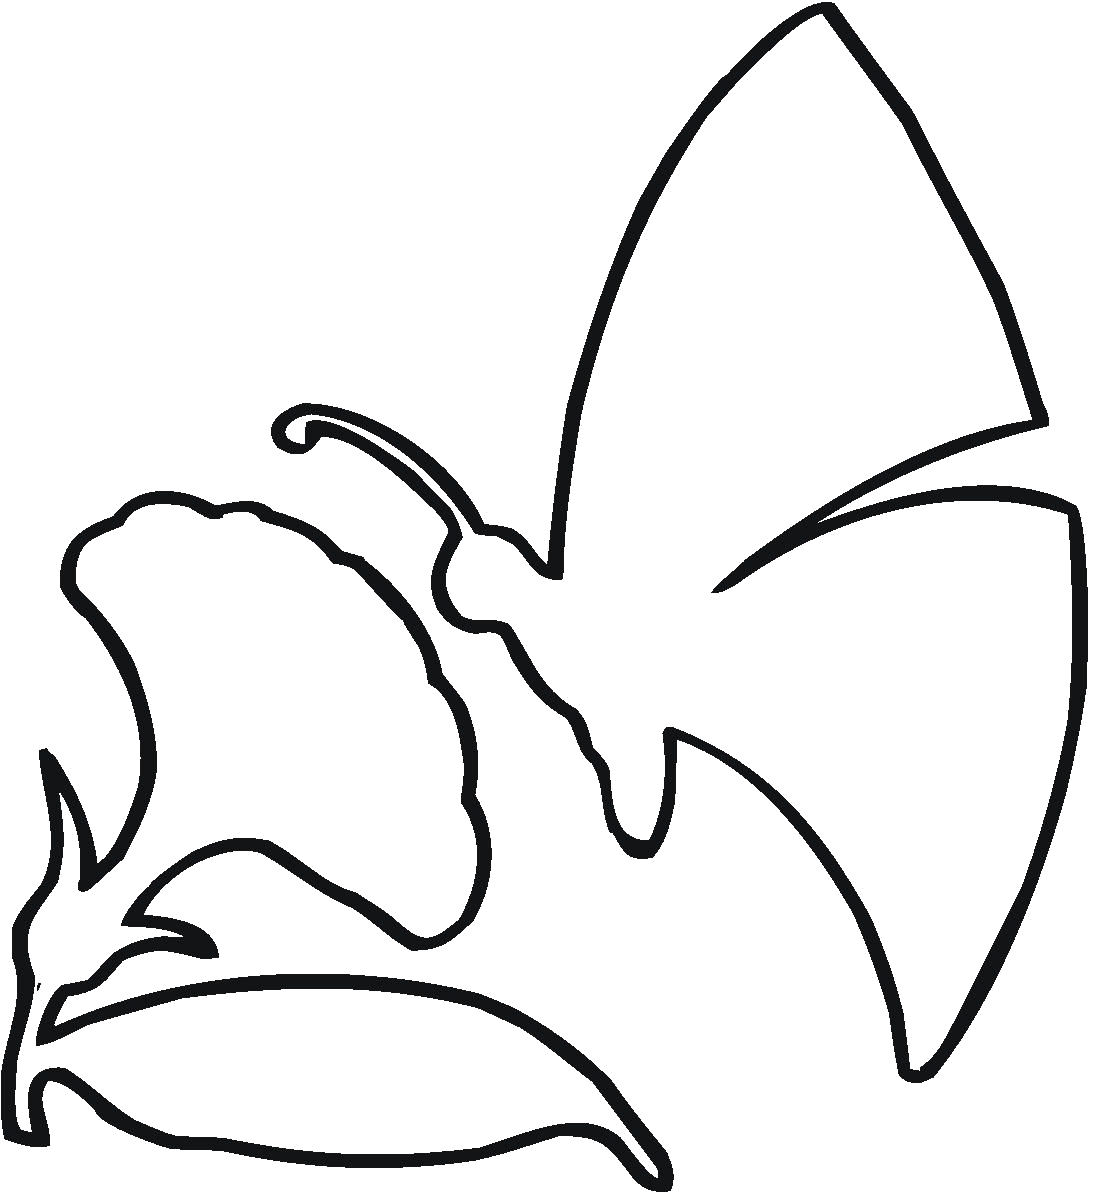 Flower outlines for coloring clipart best for Flower outline coloring page